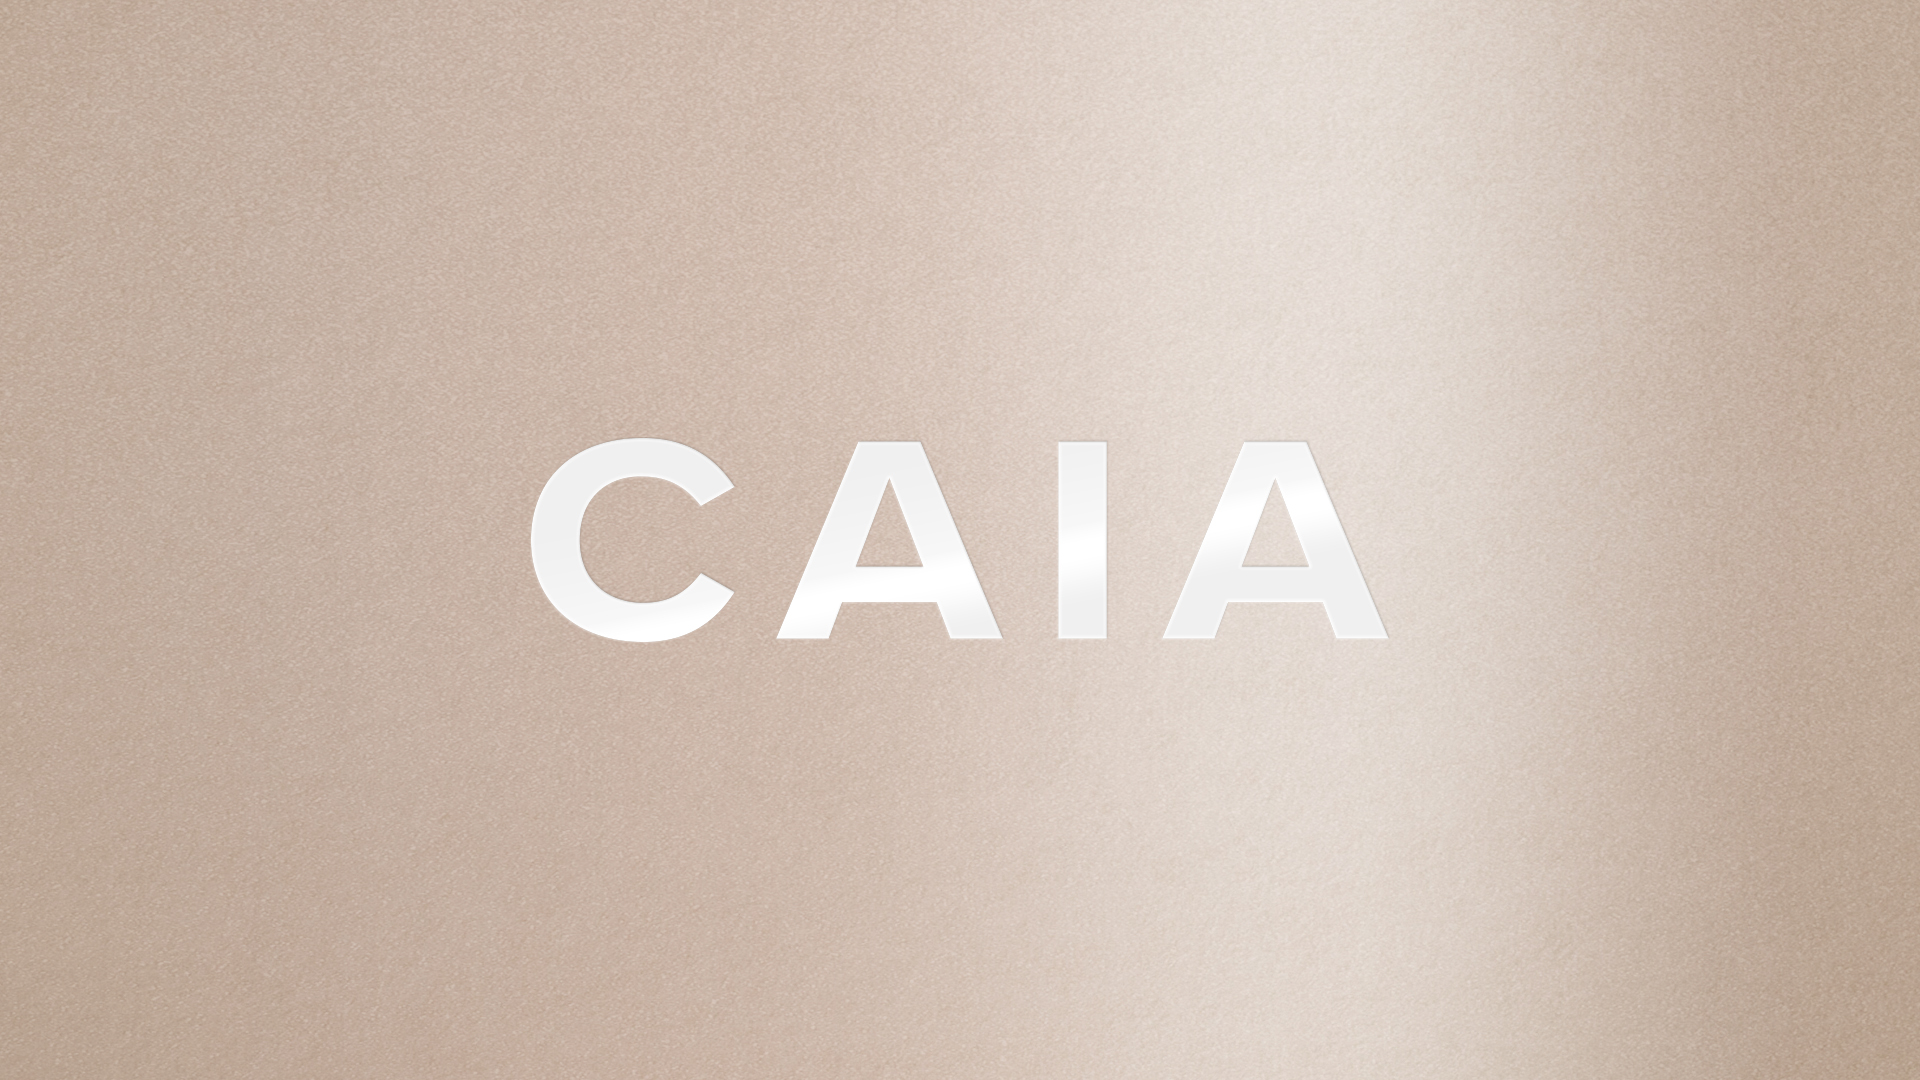 Logotype for Caia Cosmetics - Design by GLHF Design Studio